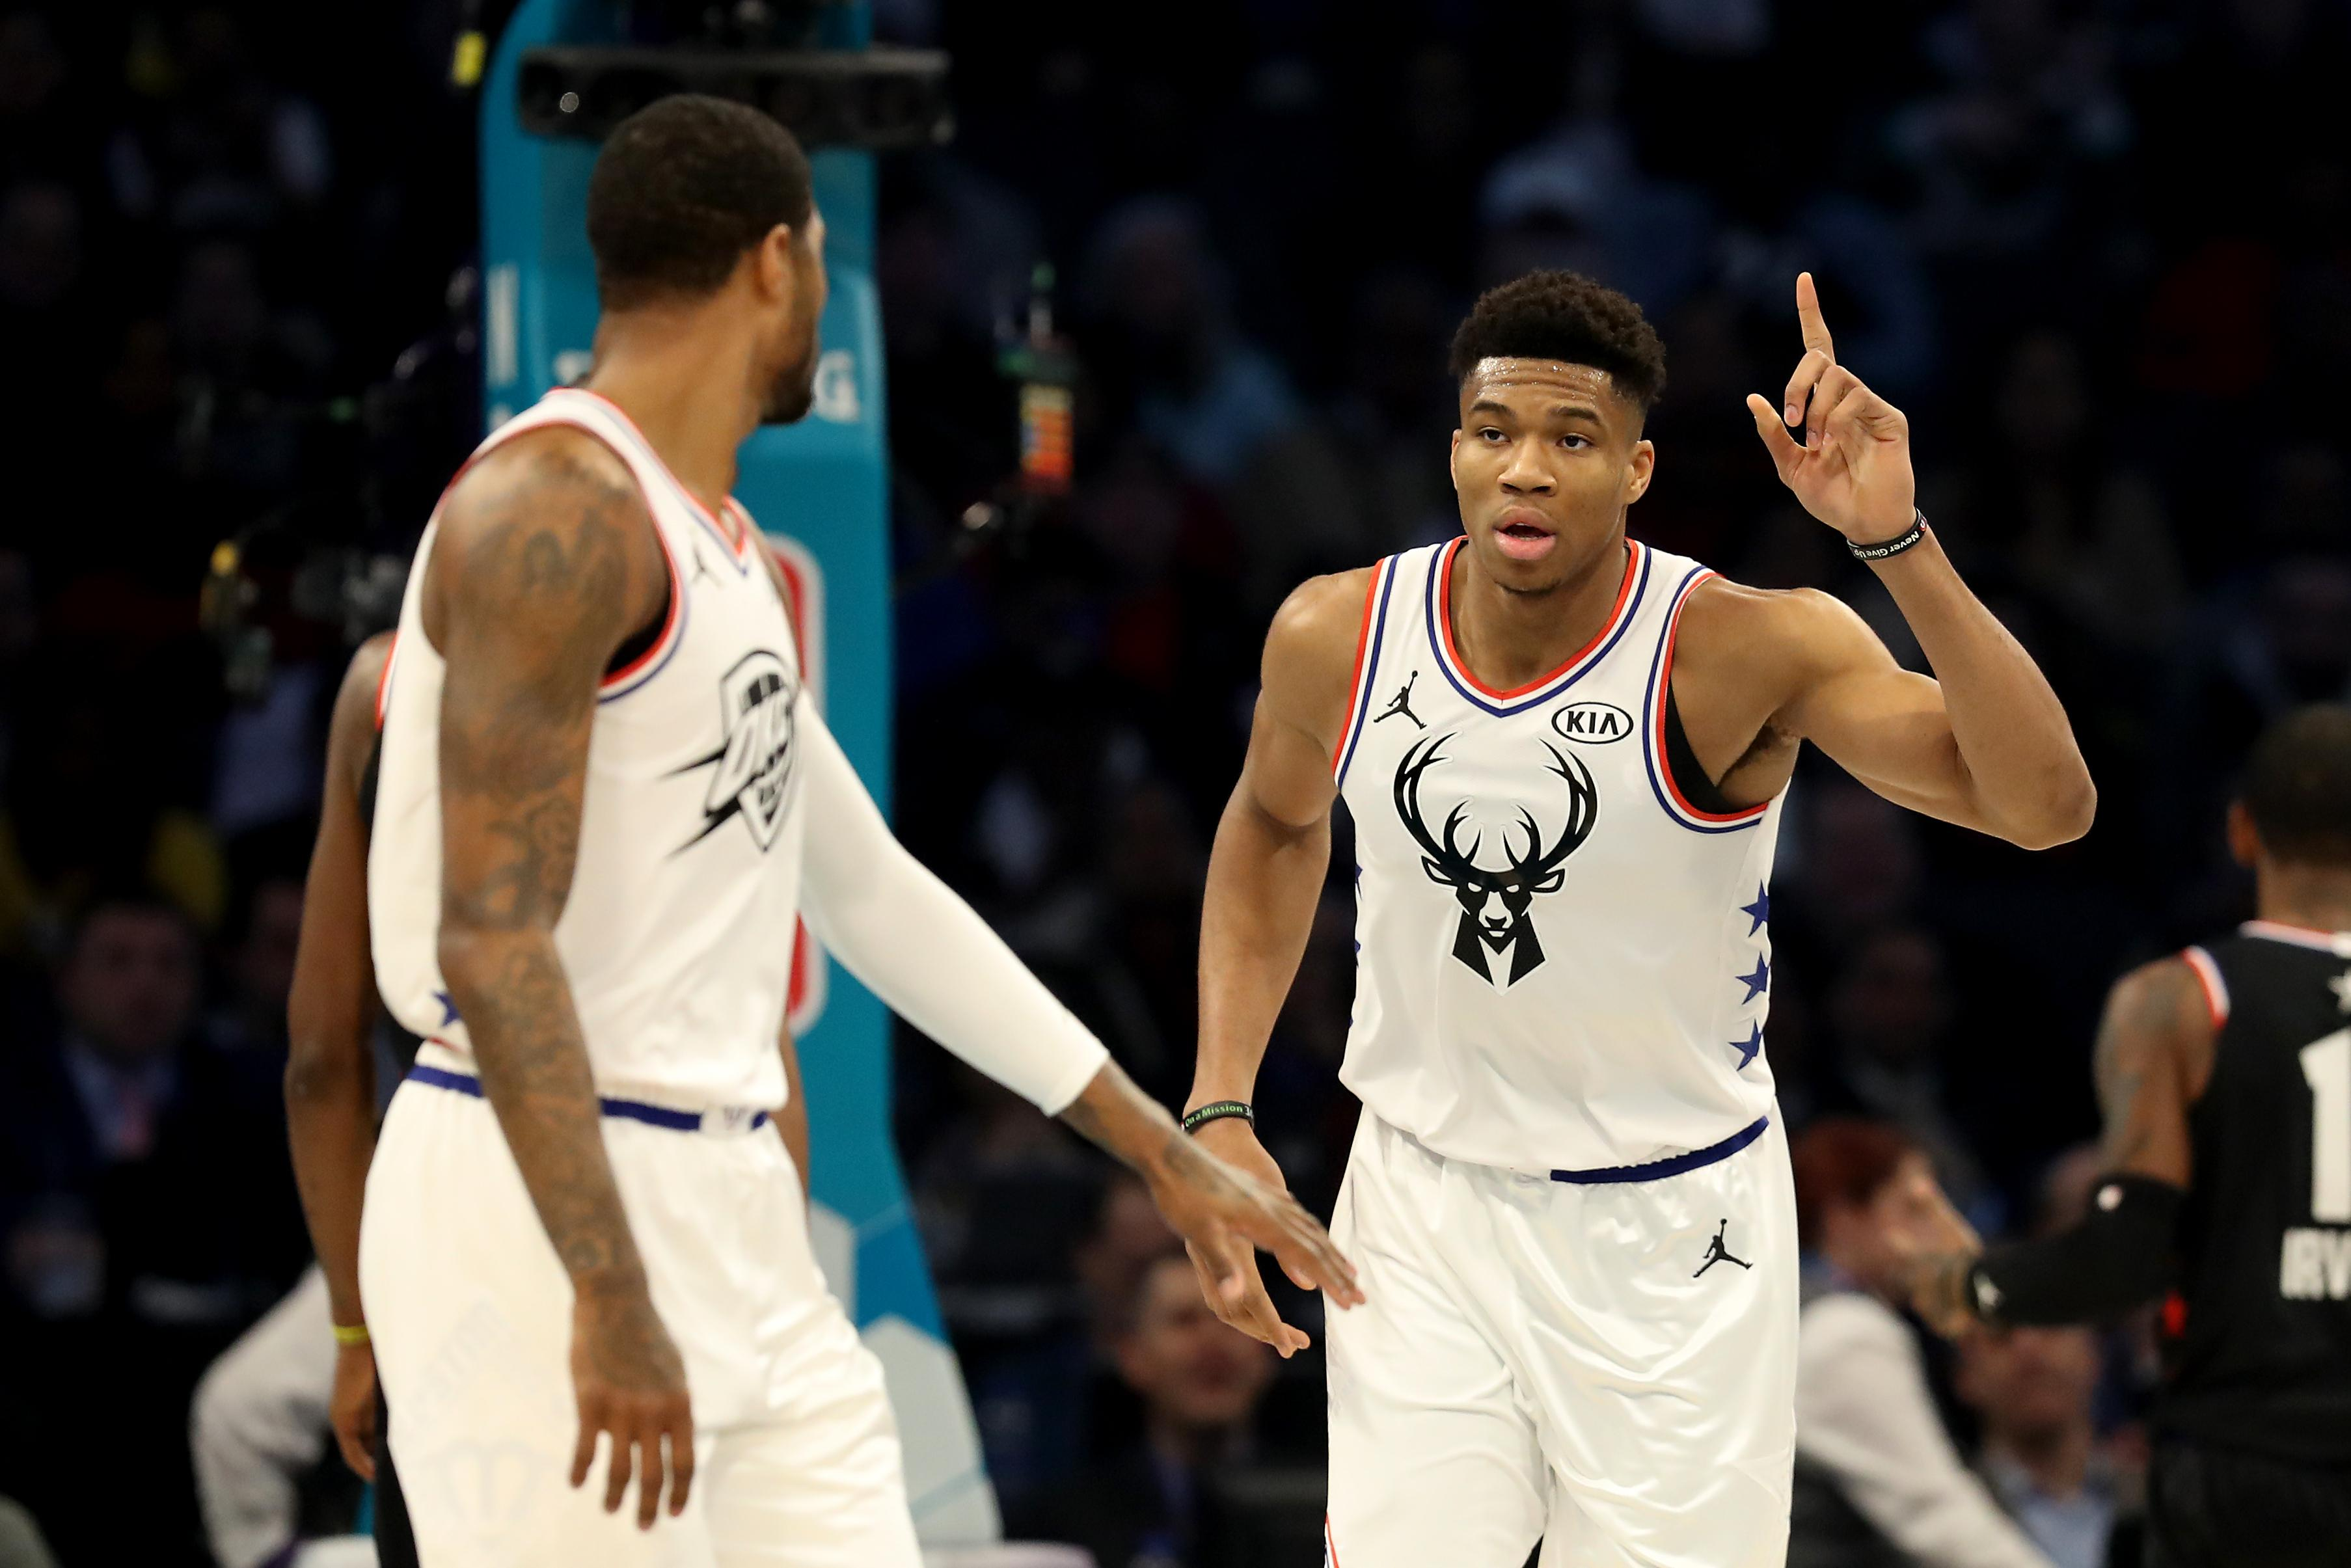 0f1ad3365eb Giannis Antetokounmpo  34 of the Milwaukee Bucks and Team Giannis reacts  against Team LeBron in the first quarter during the NBA All-Star game as  part of ...